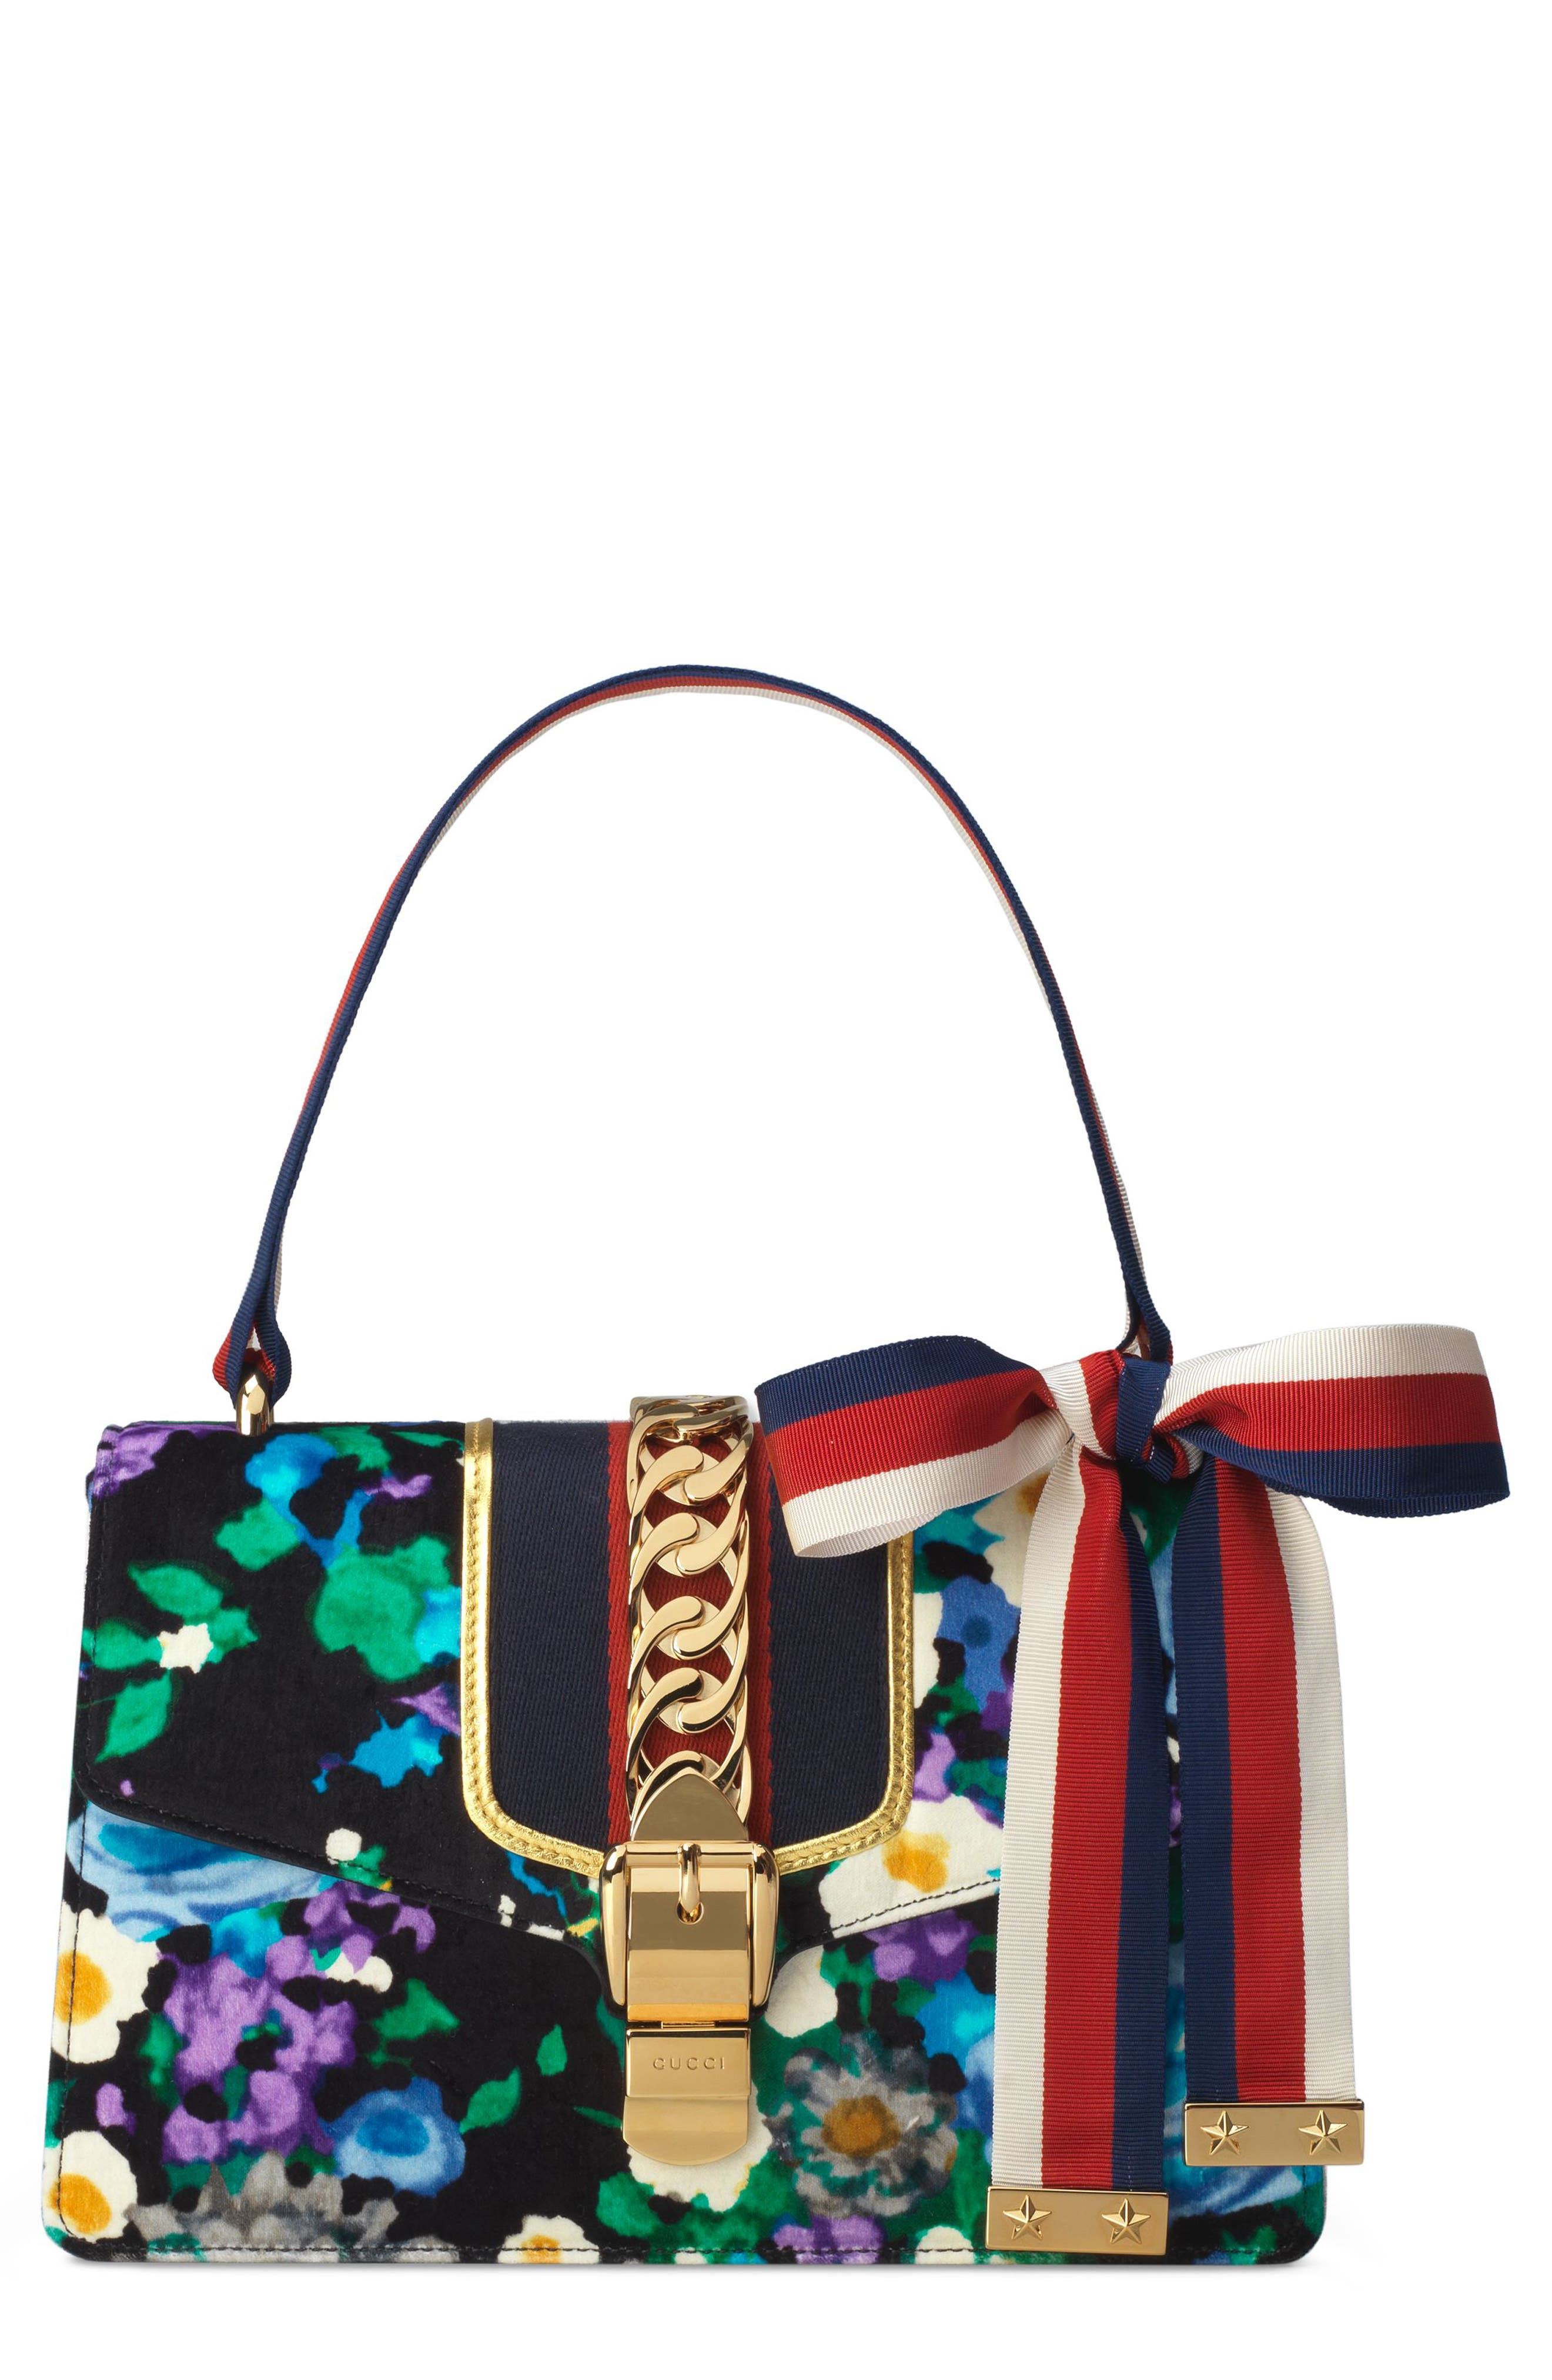 GUCCI,                             Small Floral Print Leather Shoulder Bag,                             Main thumbnail 1, color,                             001